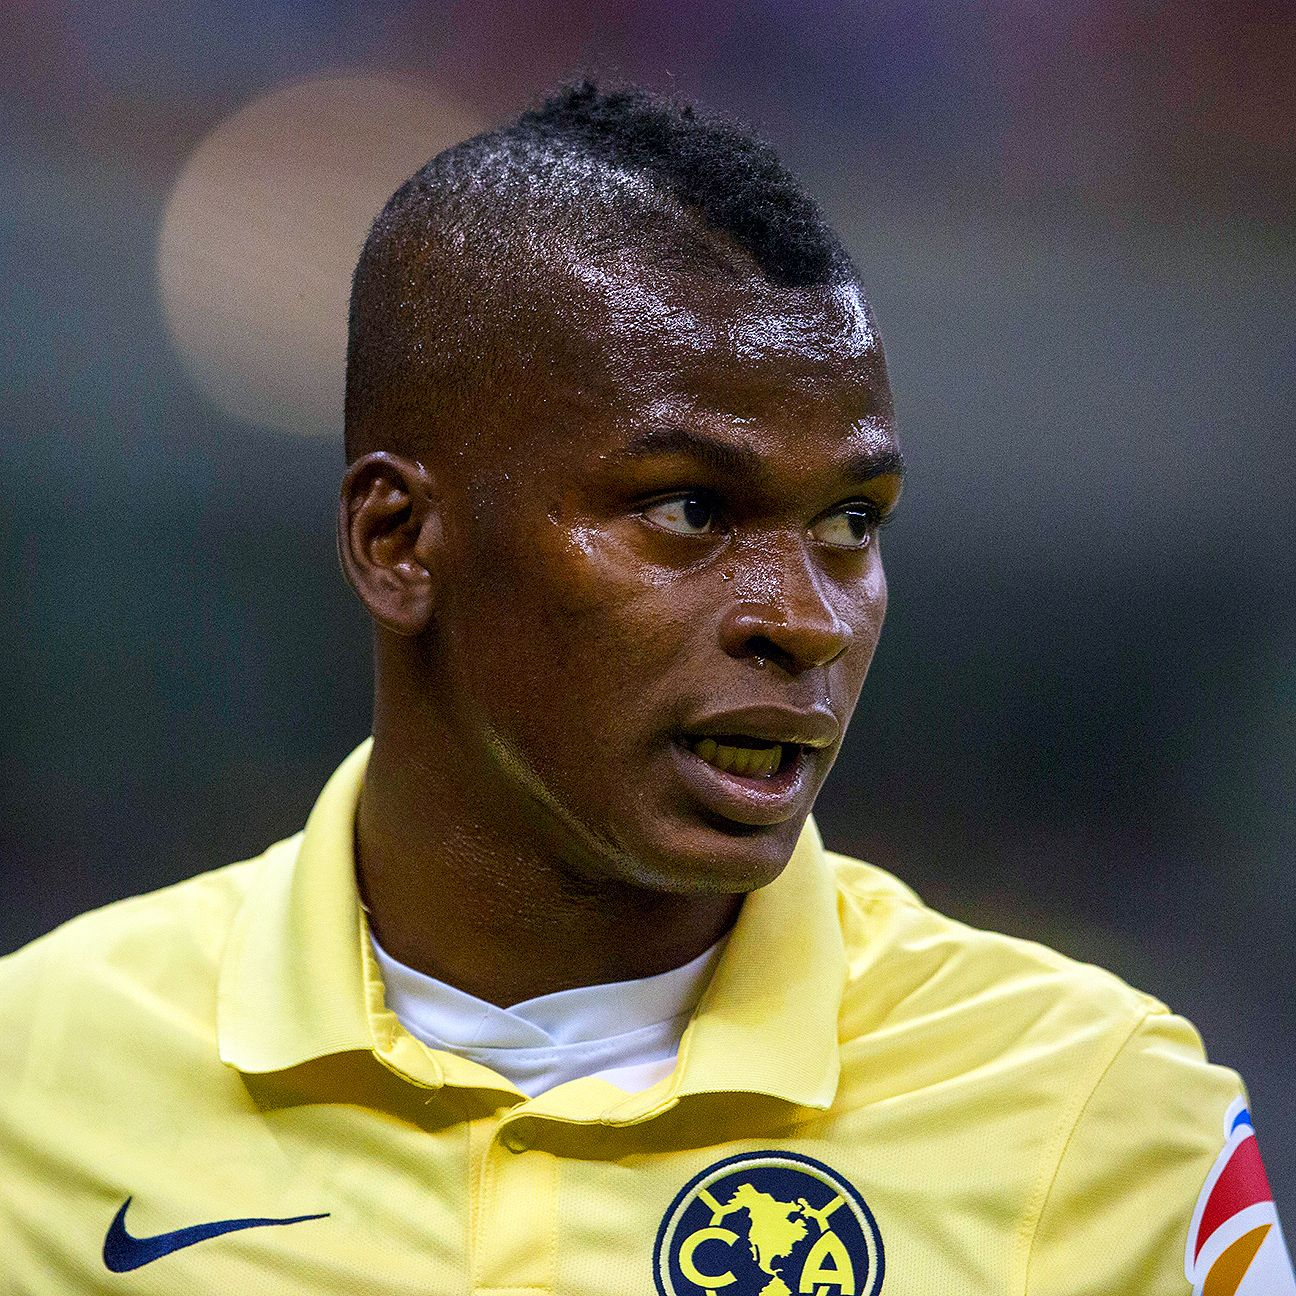 Darwin Quintero's goal provided one of the few bright spots for Club America in Sunday's 4-2 loss to Puebla.